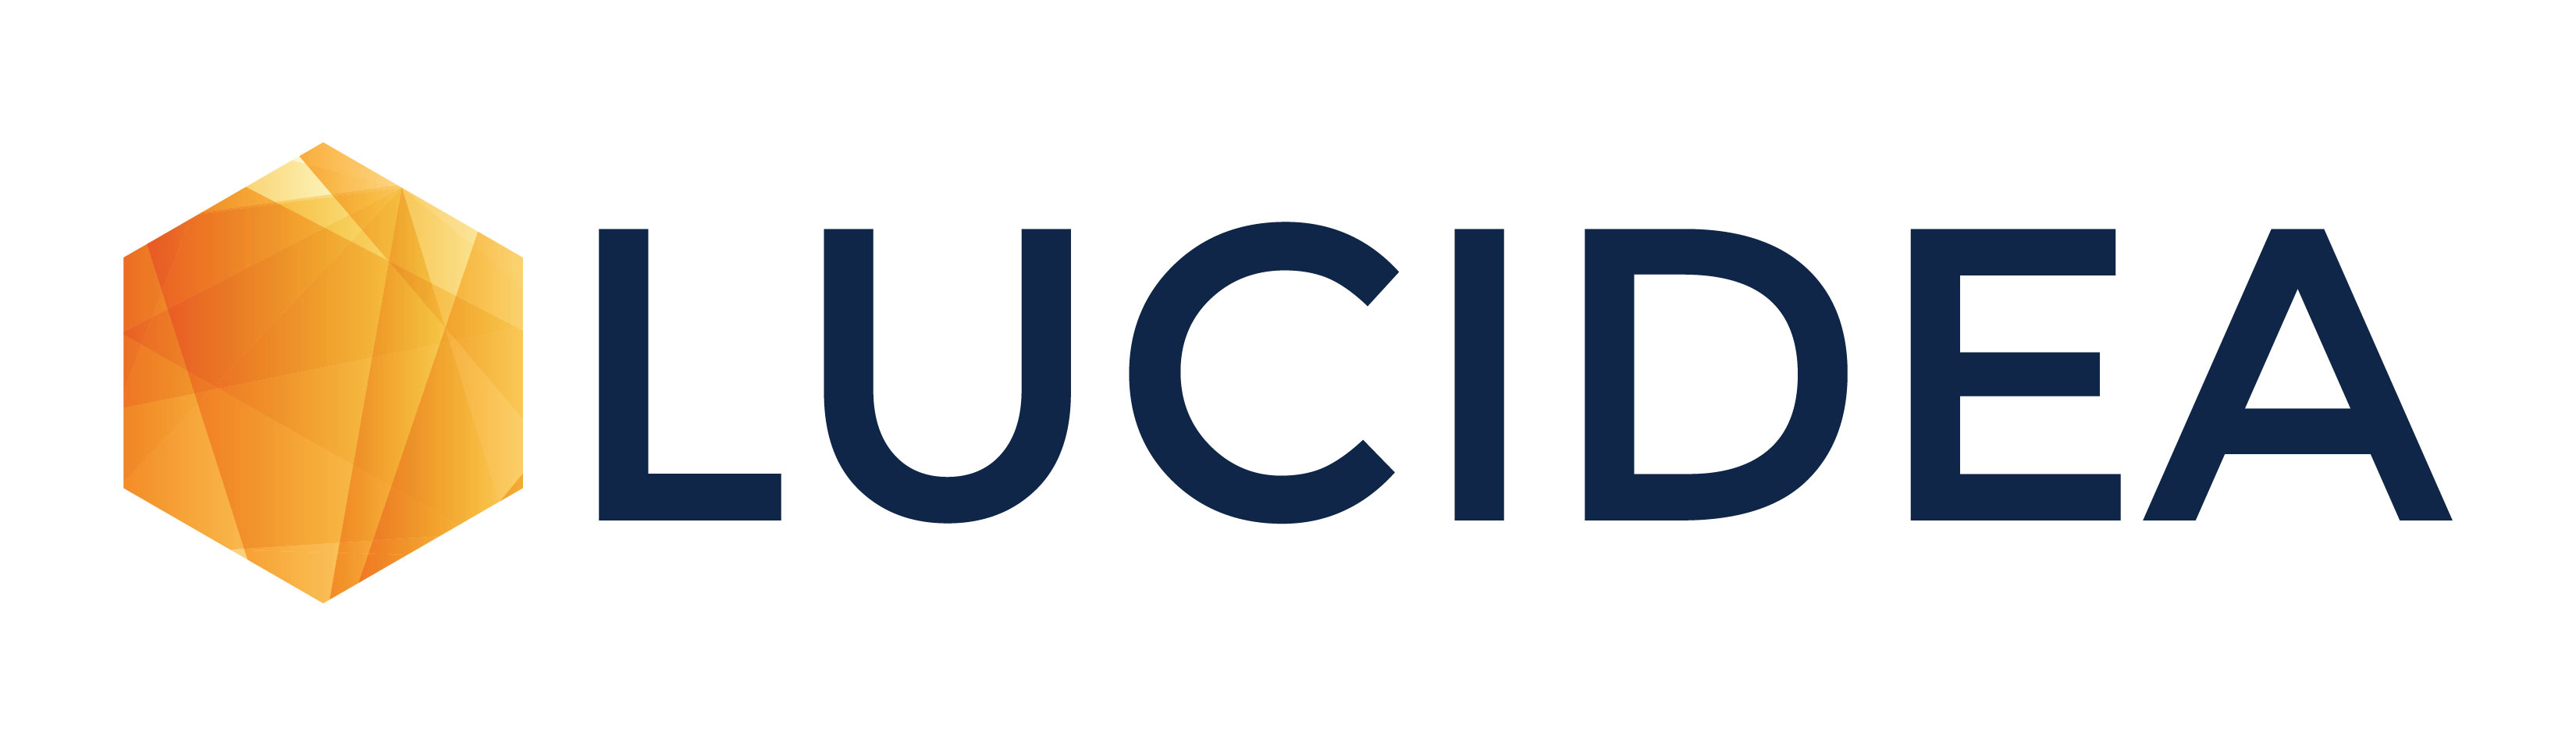 Lucidea Logo